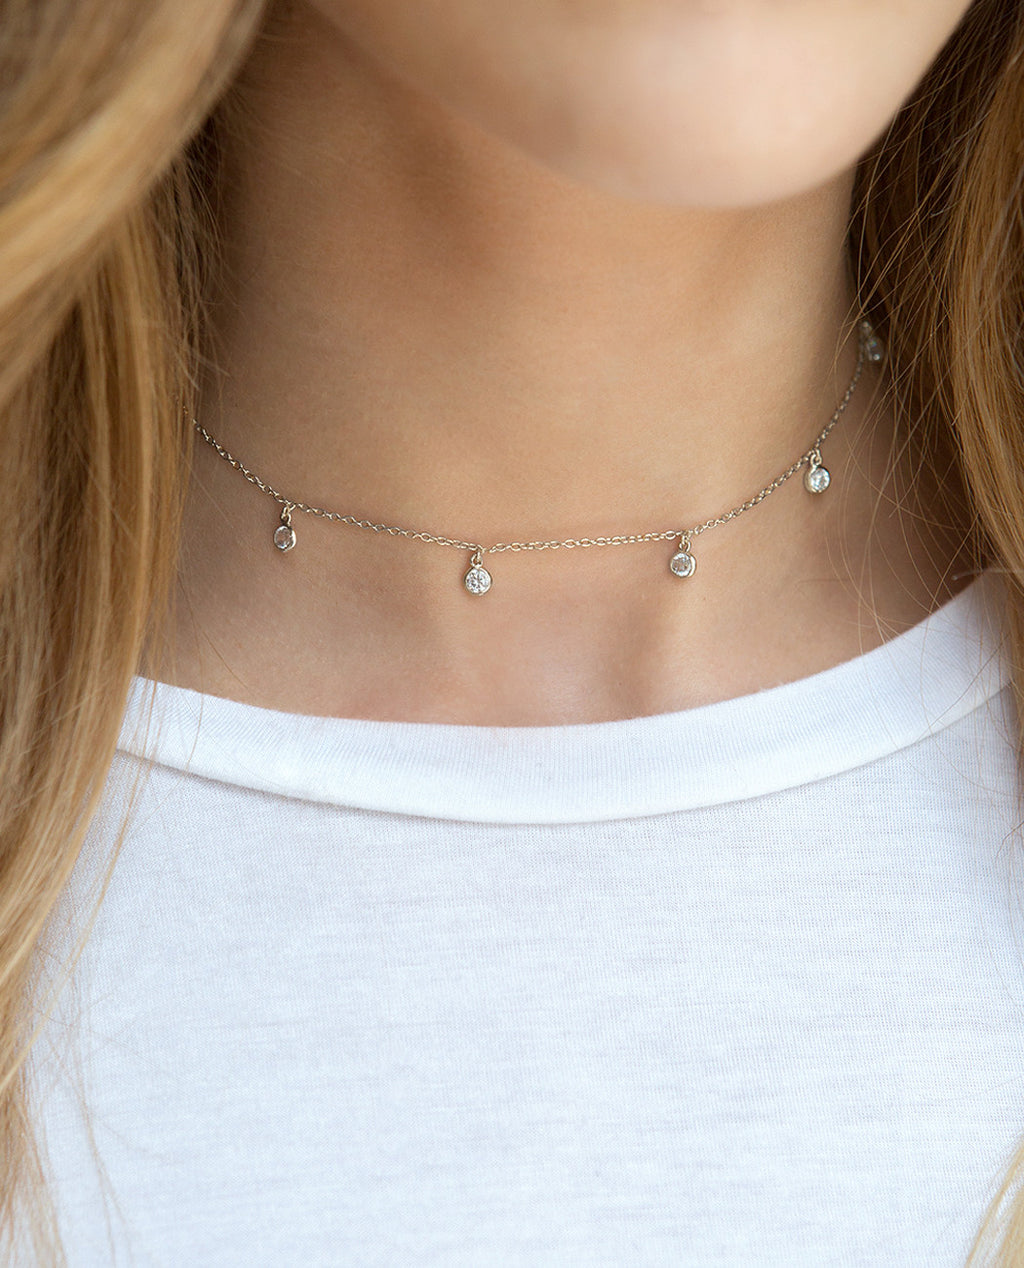 Sienna Silver Dangle Choker, Necklaces - AMY O. Jewelry